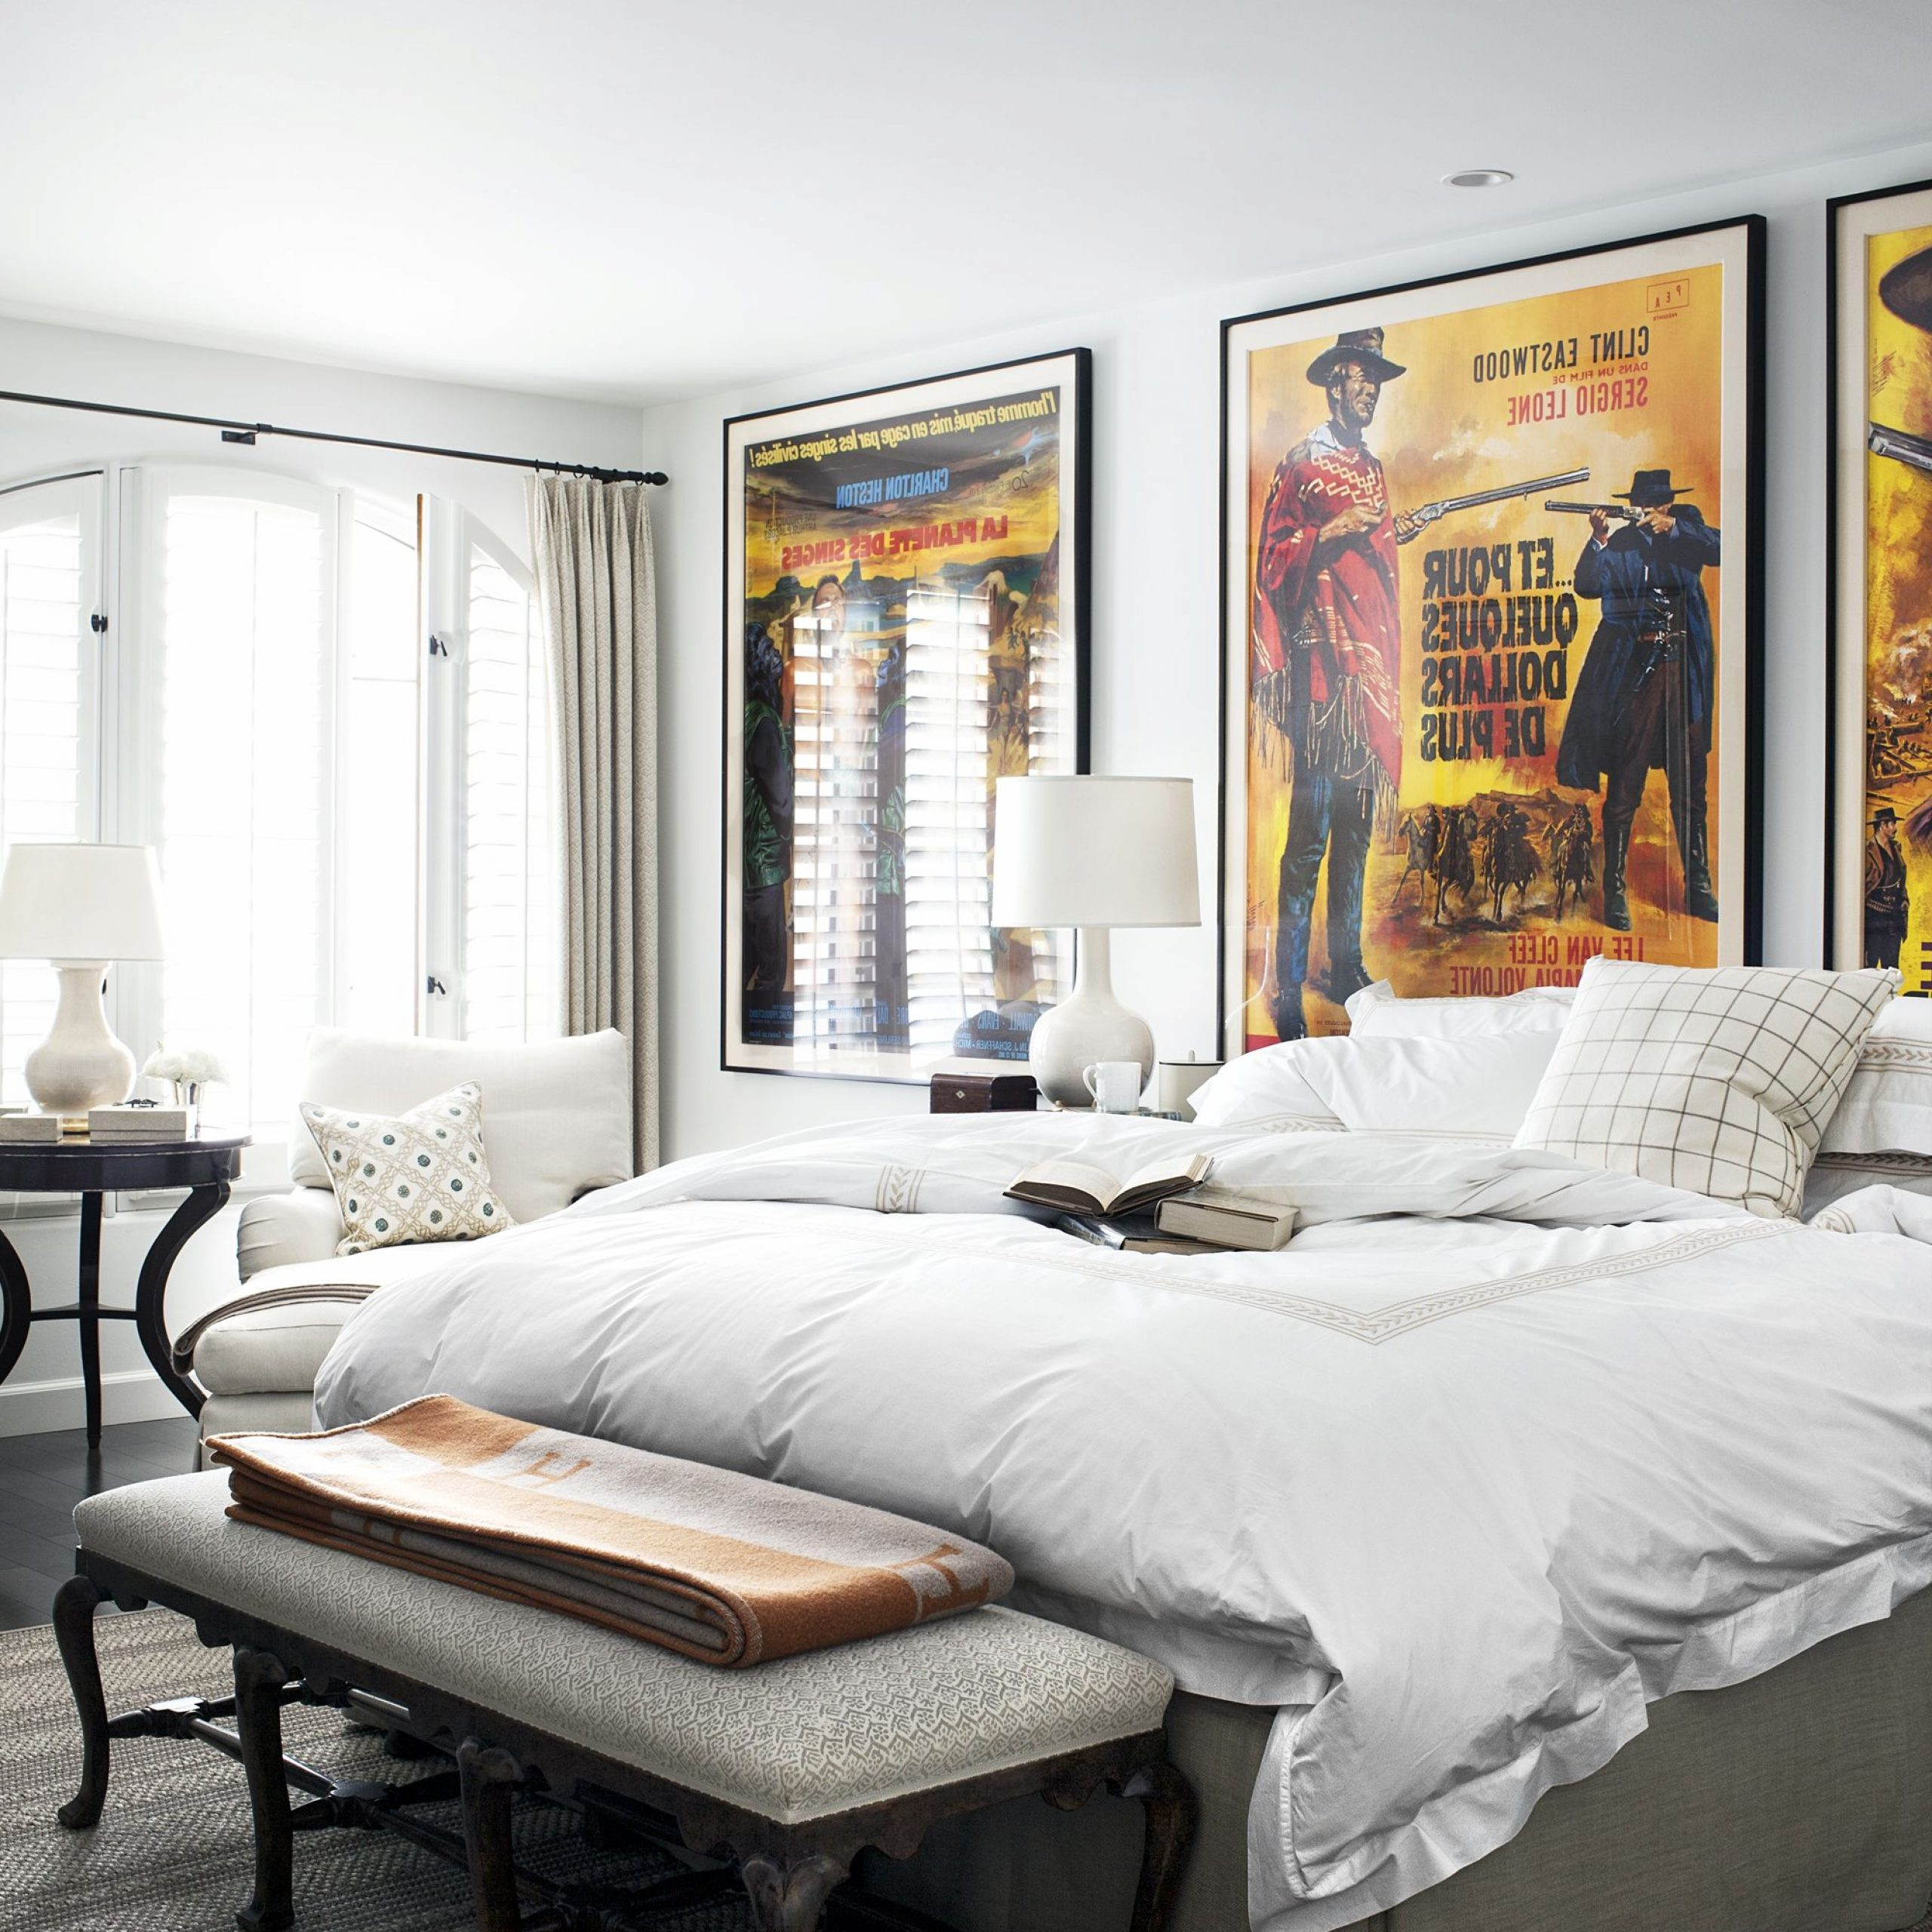 Fashionable Wall Décor By Charlton Home Throughout 19 Best Bedroom Wall Decor Ideas In 2021 – Bedroom Wall (View 17 of 20)